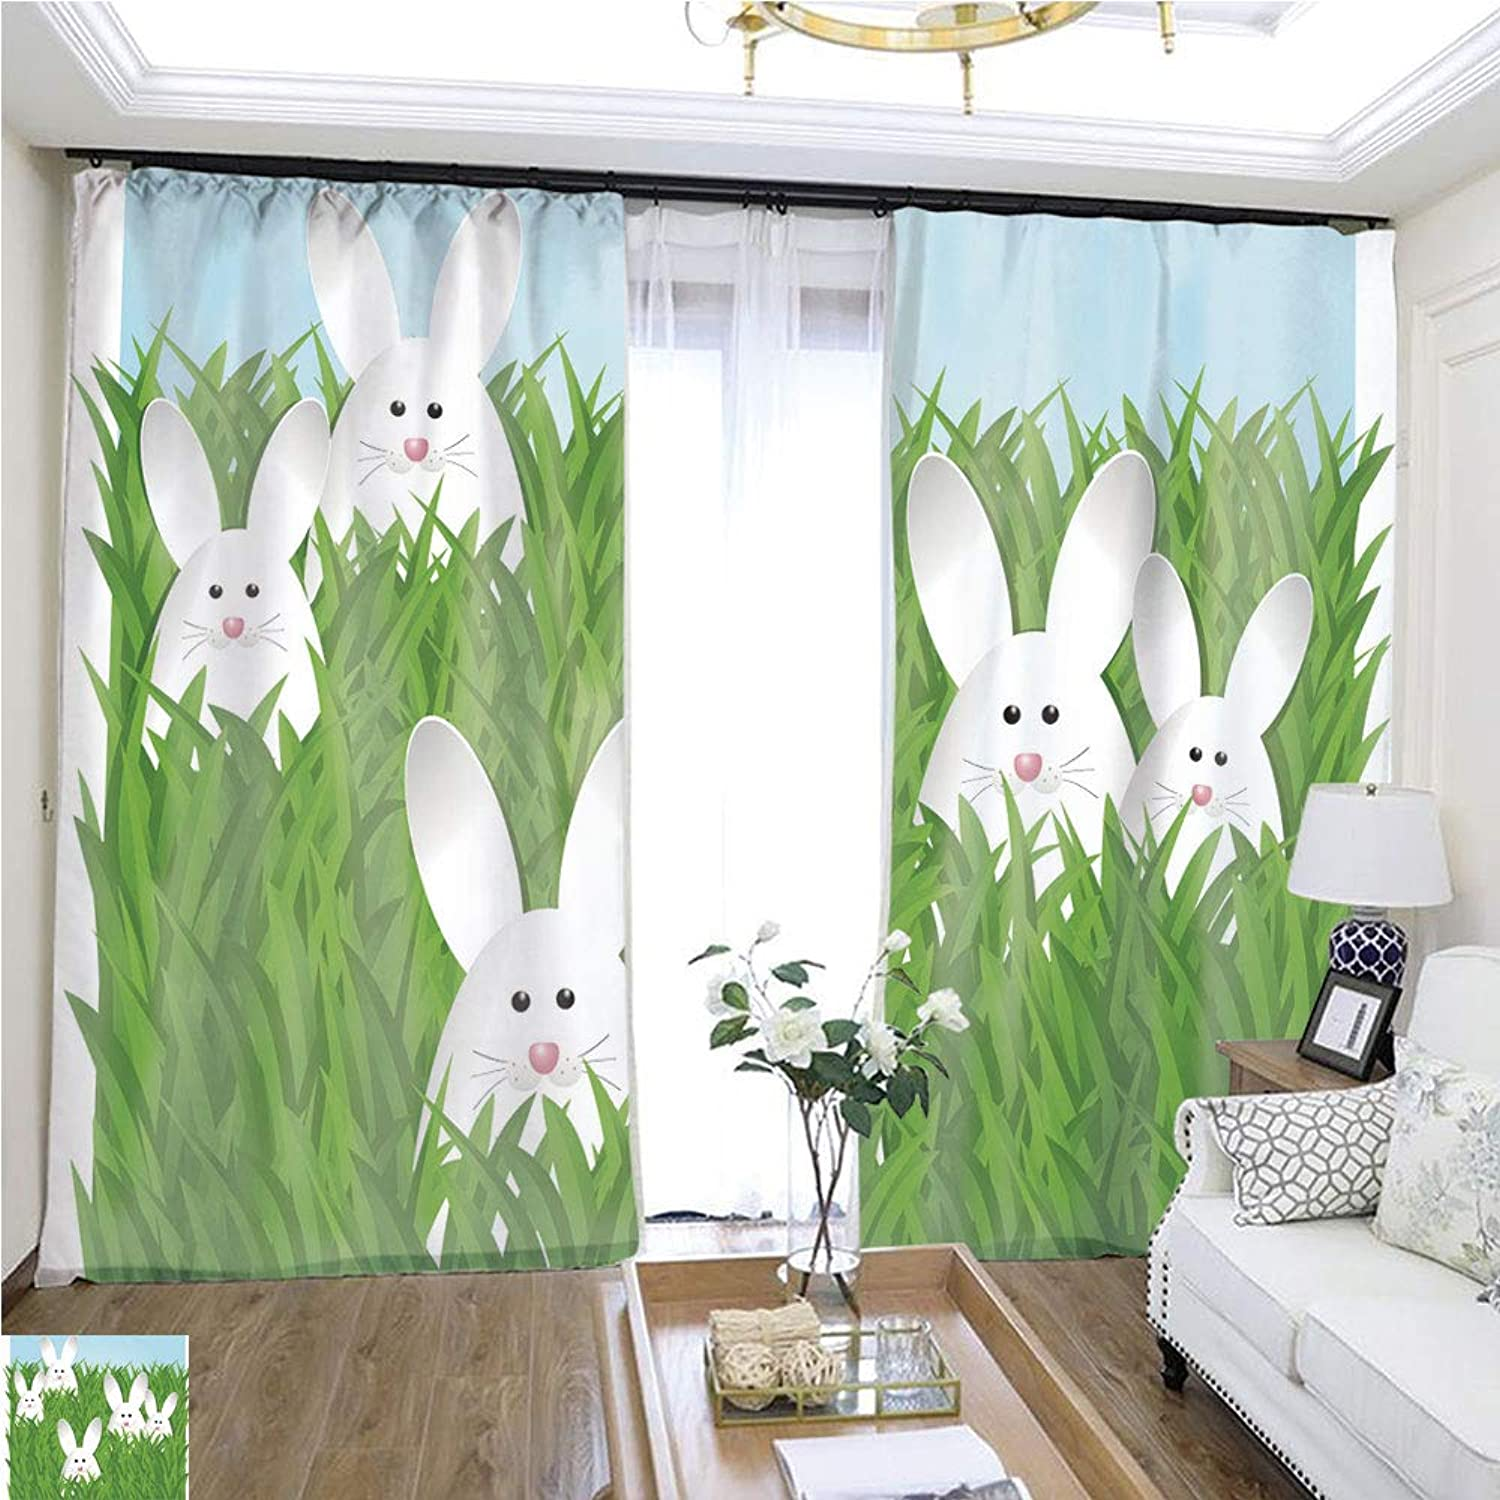 Air Port Screen Easter bunnies3 W96 x L120 Provide Heat Highprecision Curtains for bedrooms Living Rooms Kitchens etc.